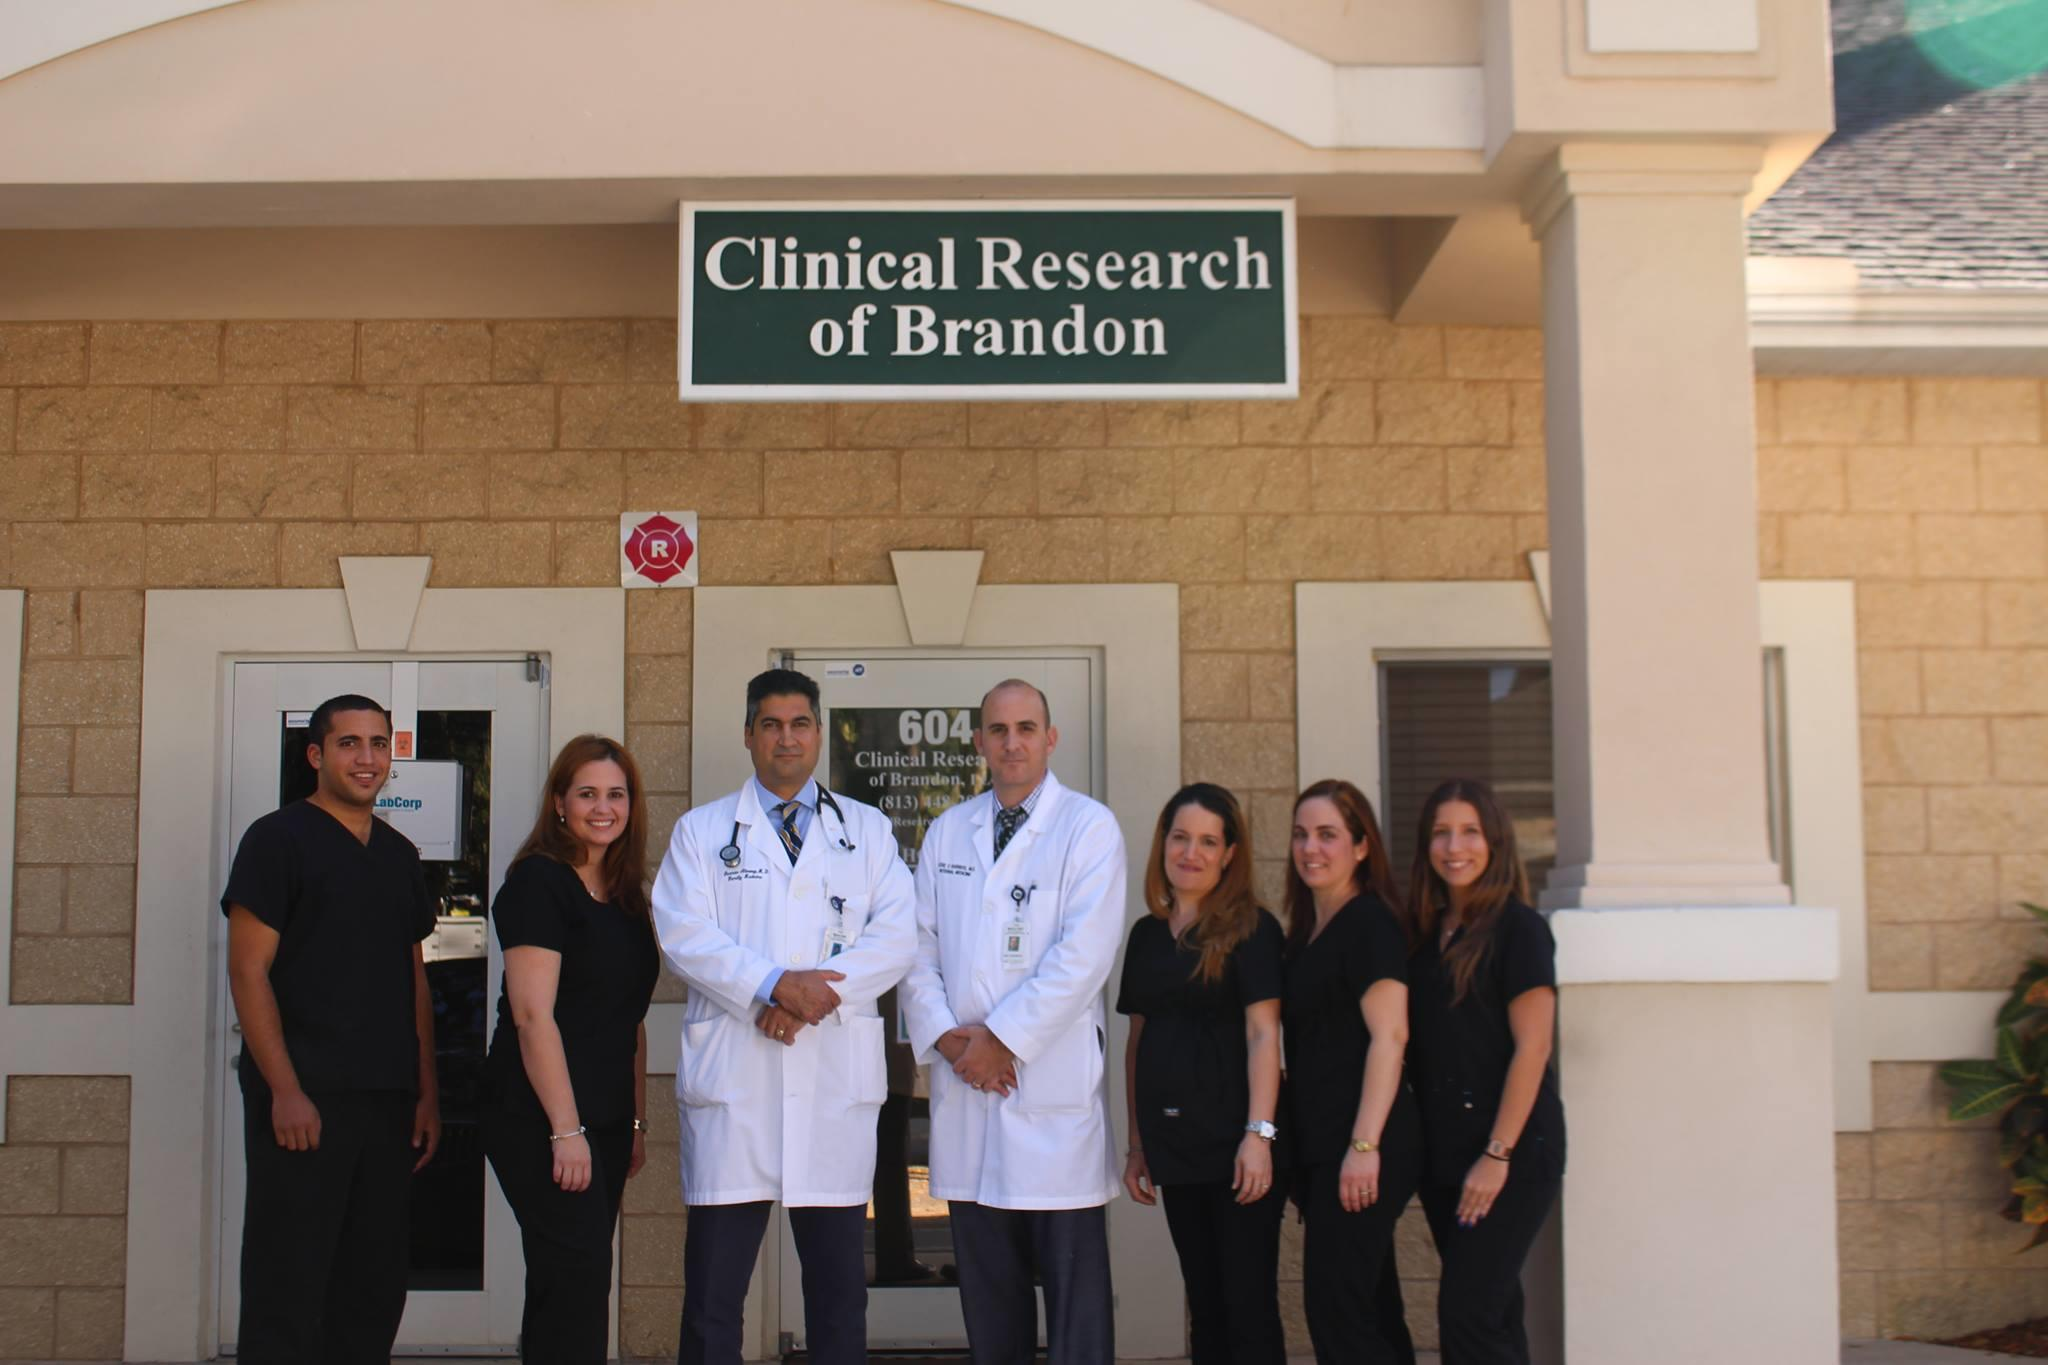 Clinical Research of Brandon LLC image 0